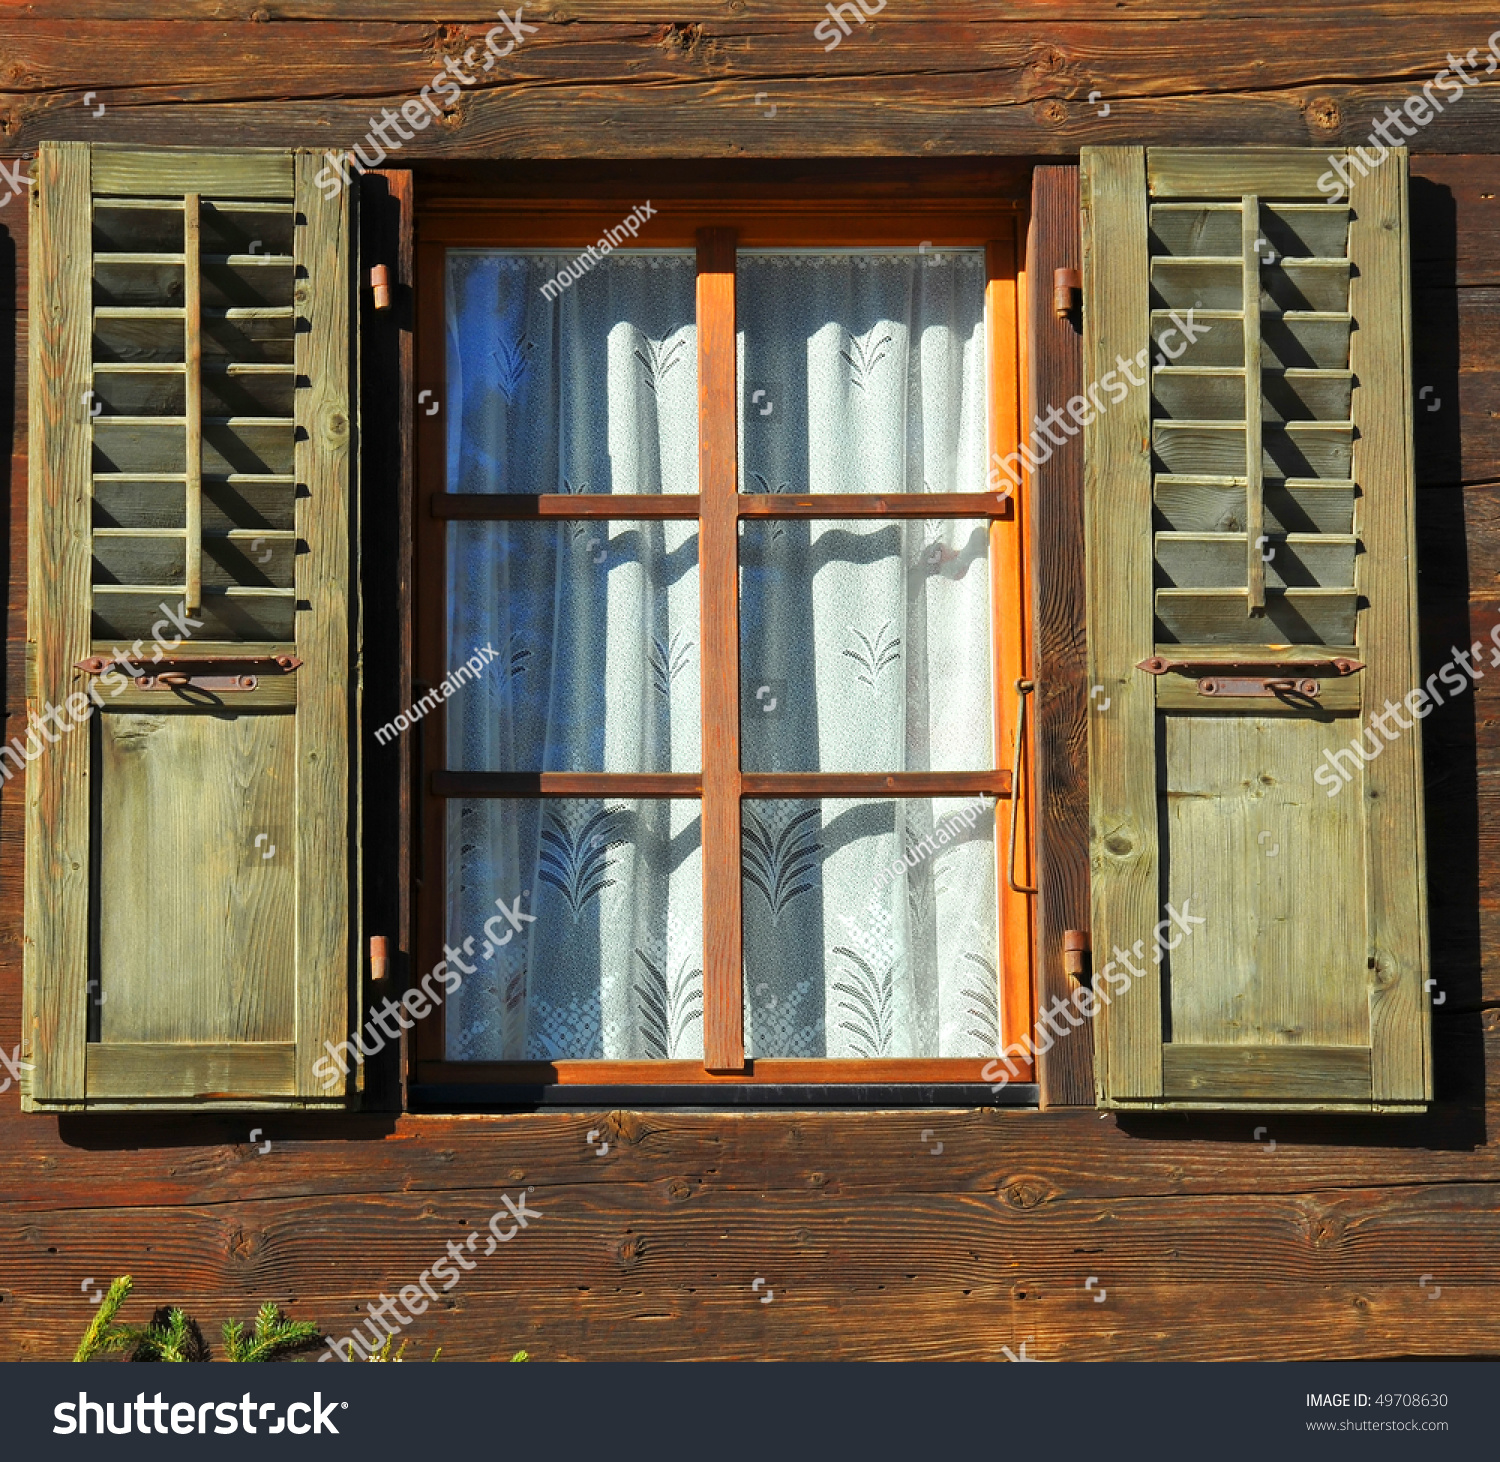 Cabins Out Of Old Windows : Old window in a traditional mountain log cabin with